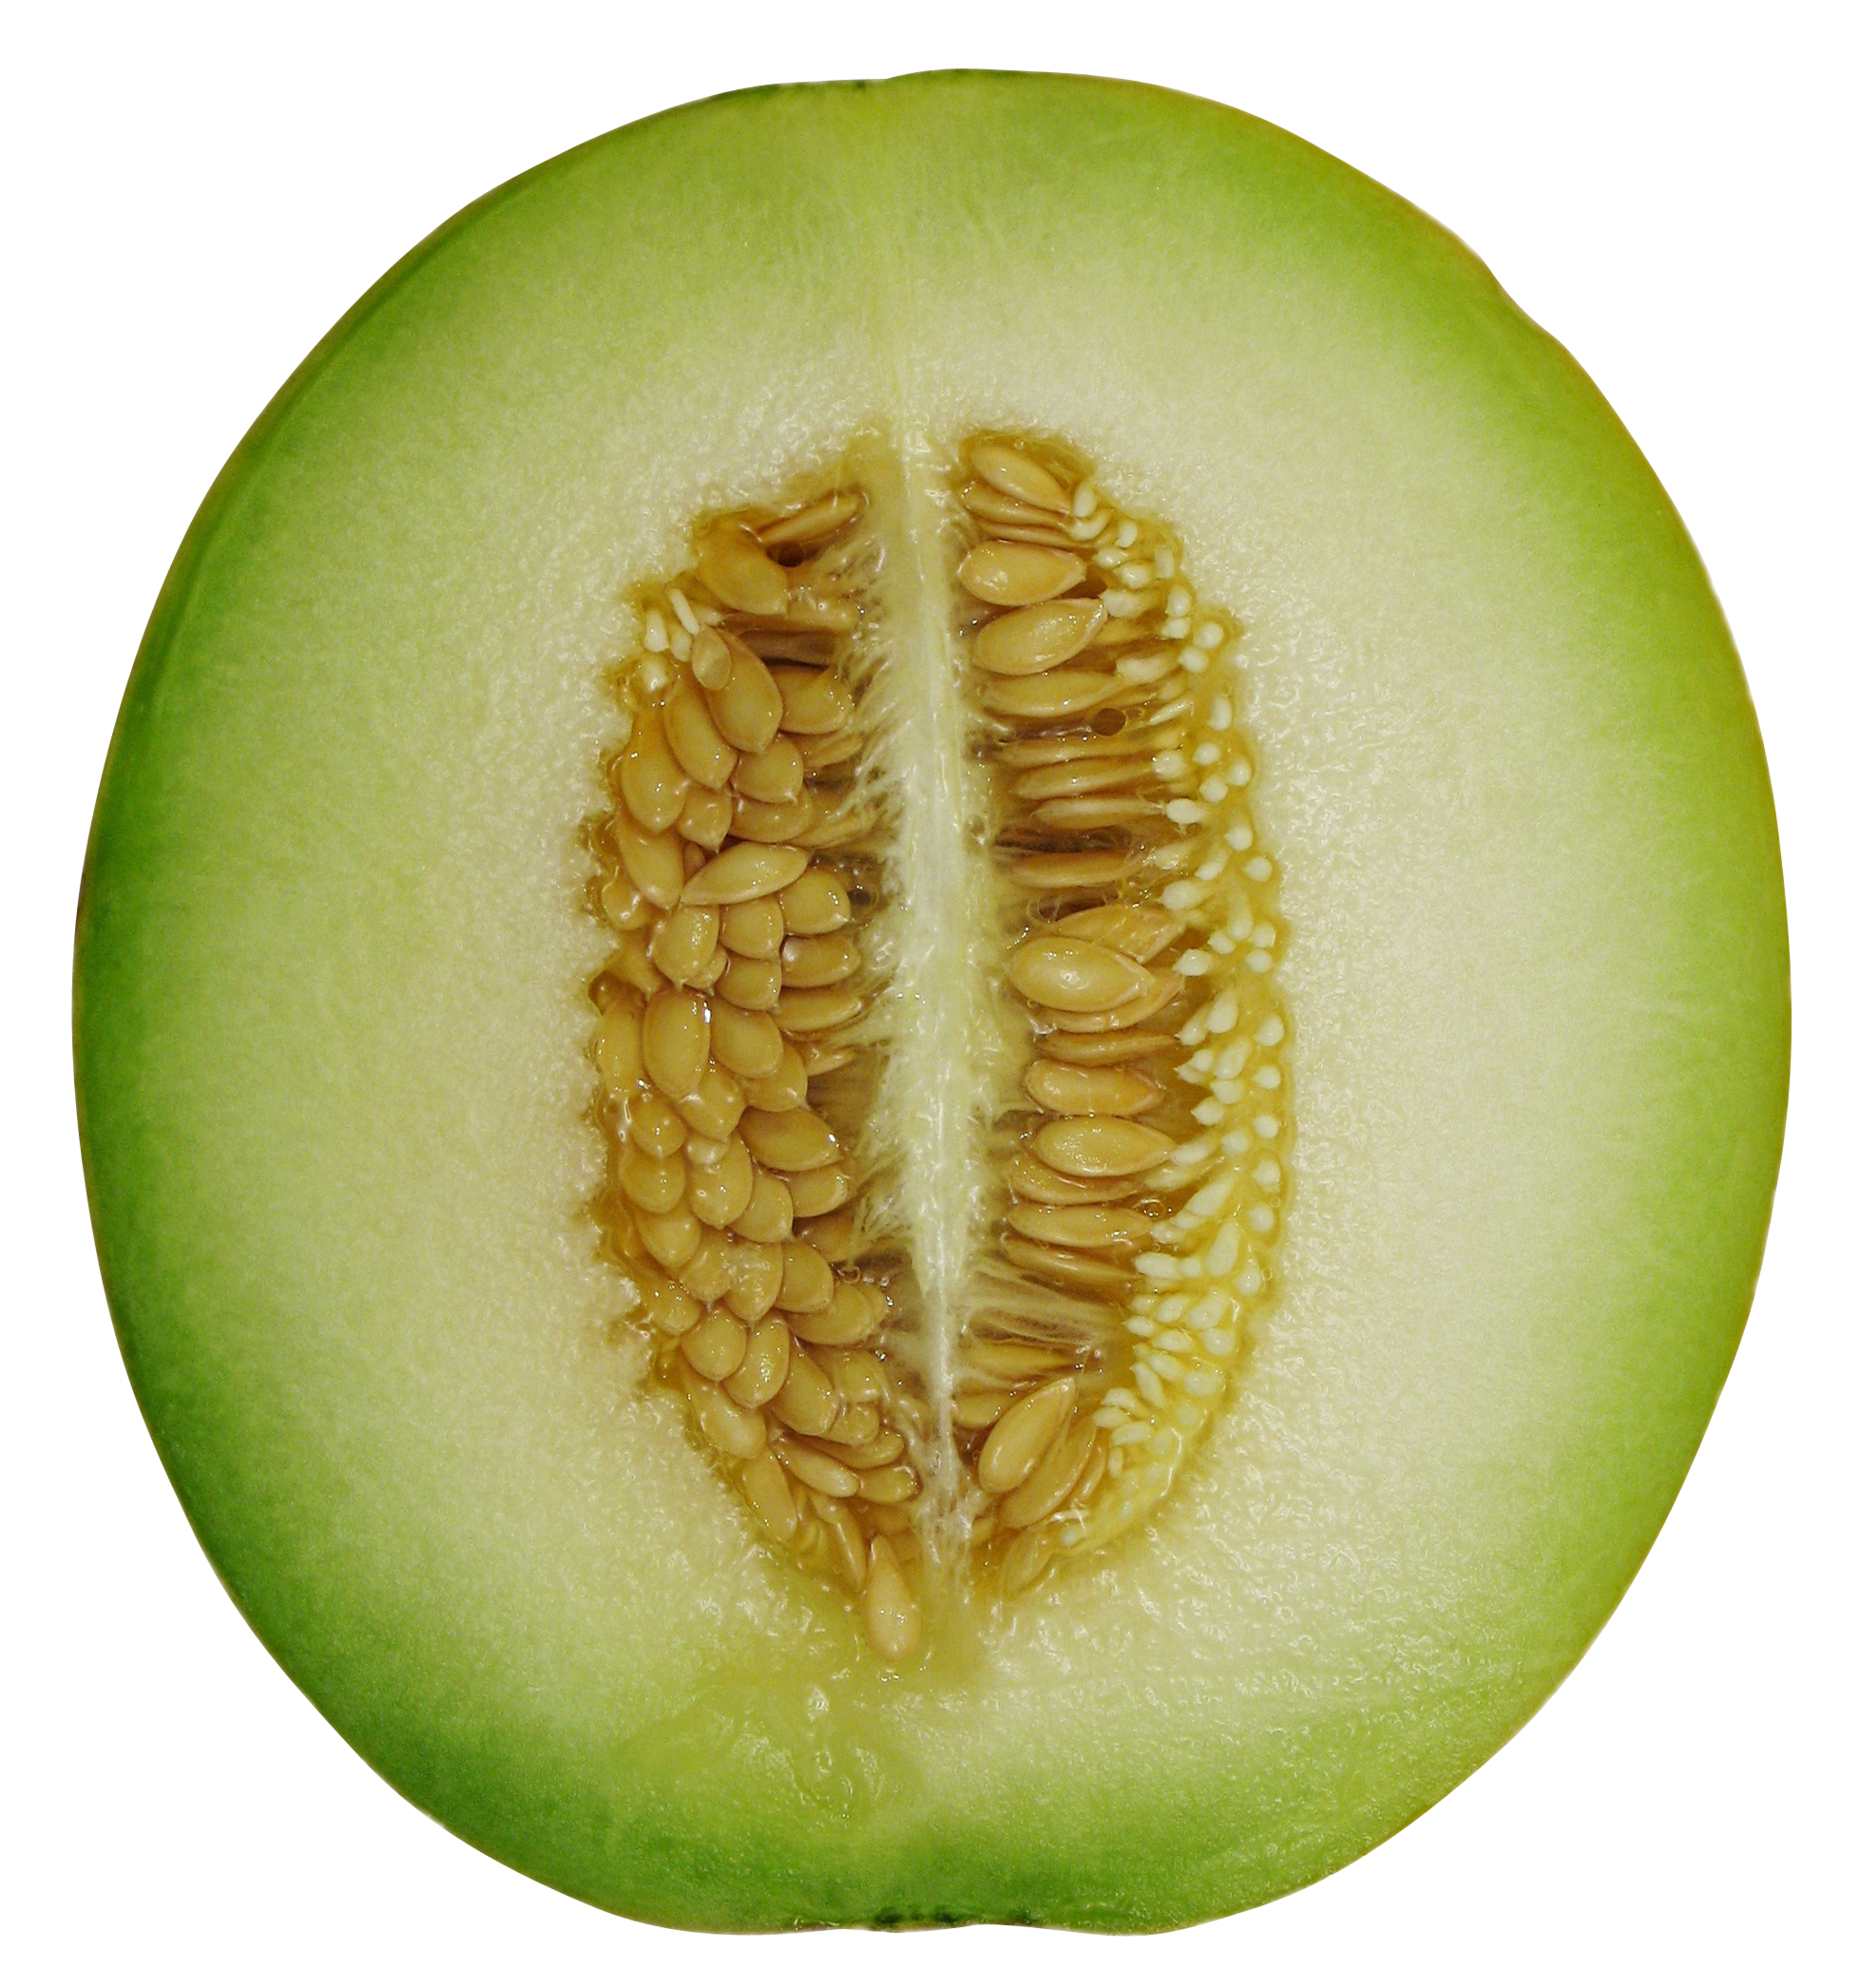 melon-cross-section-757635_Clip